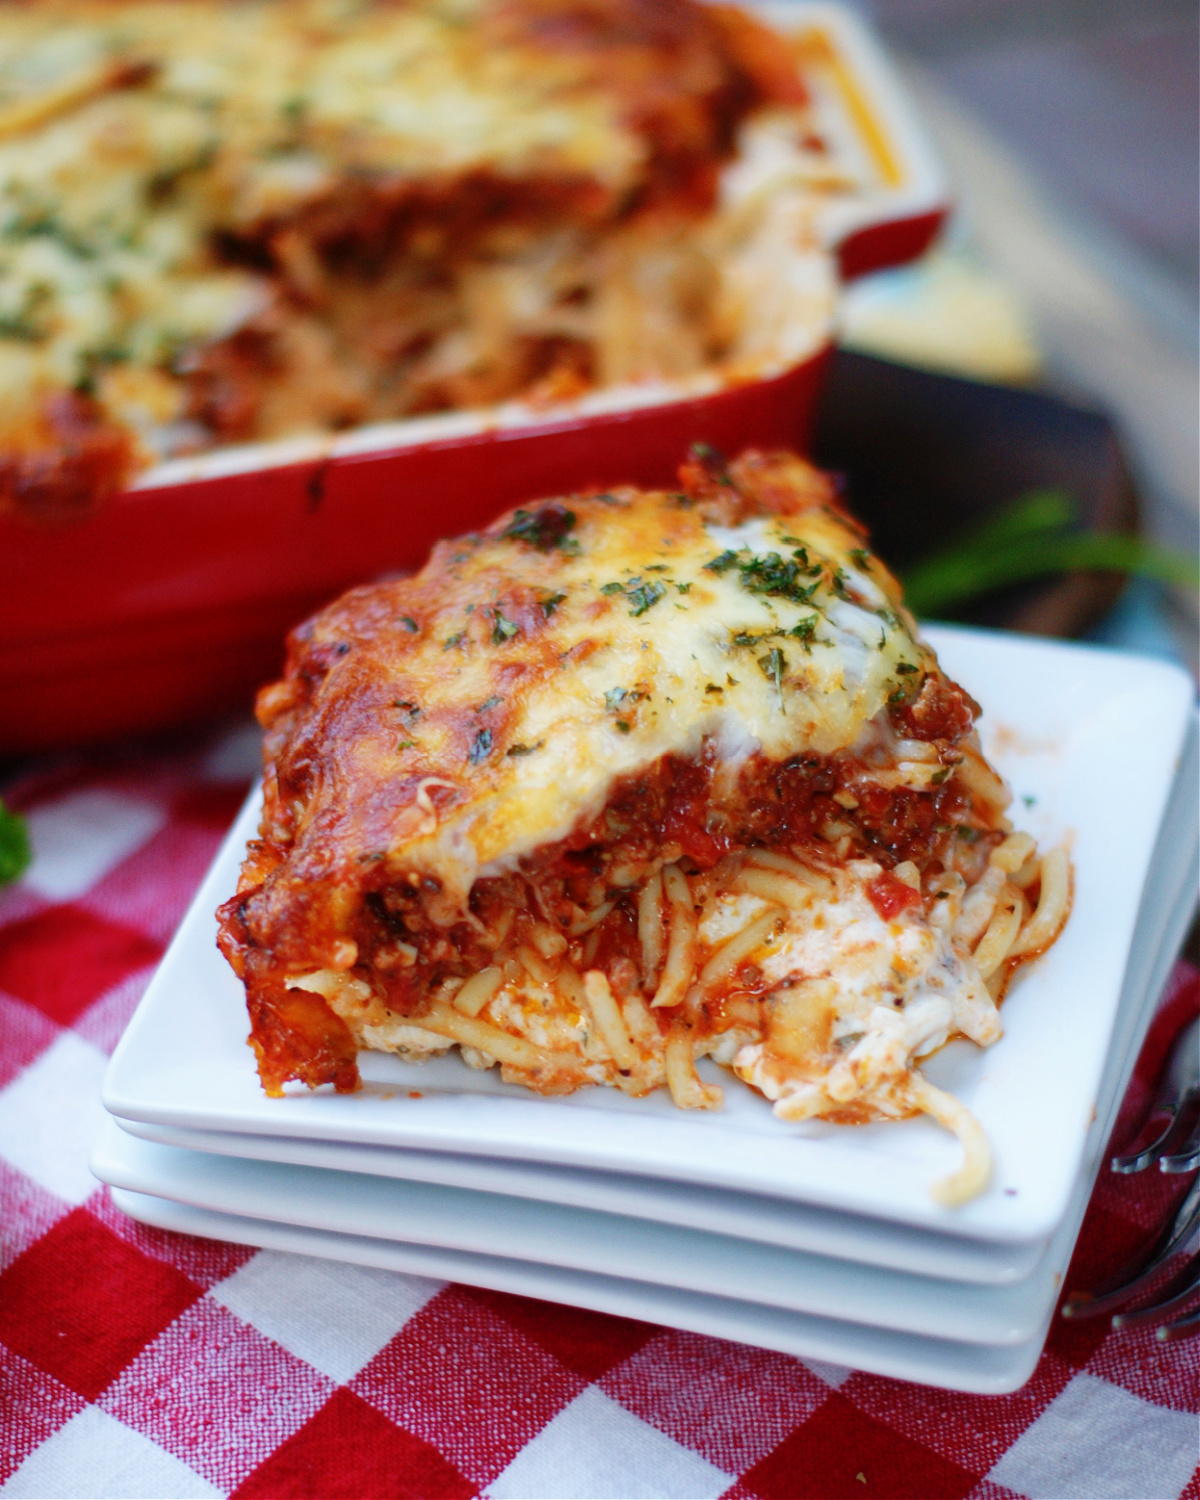 How to serve Ultimate Baked Spaghetti Casserole